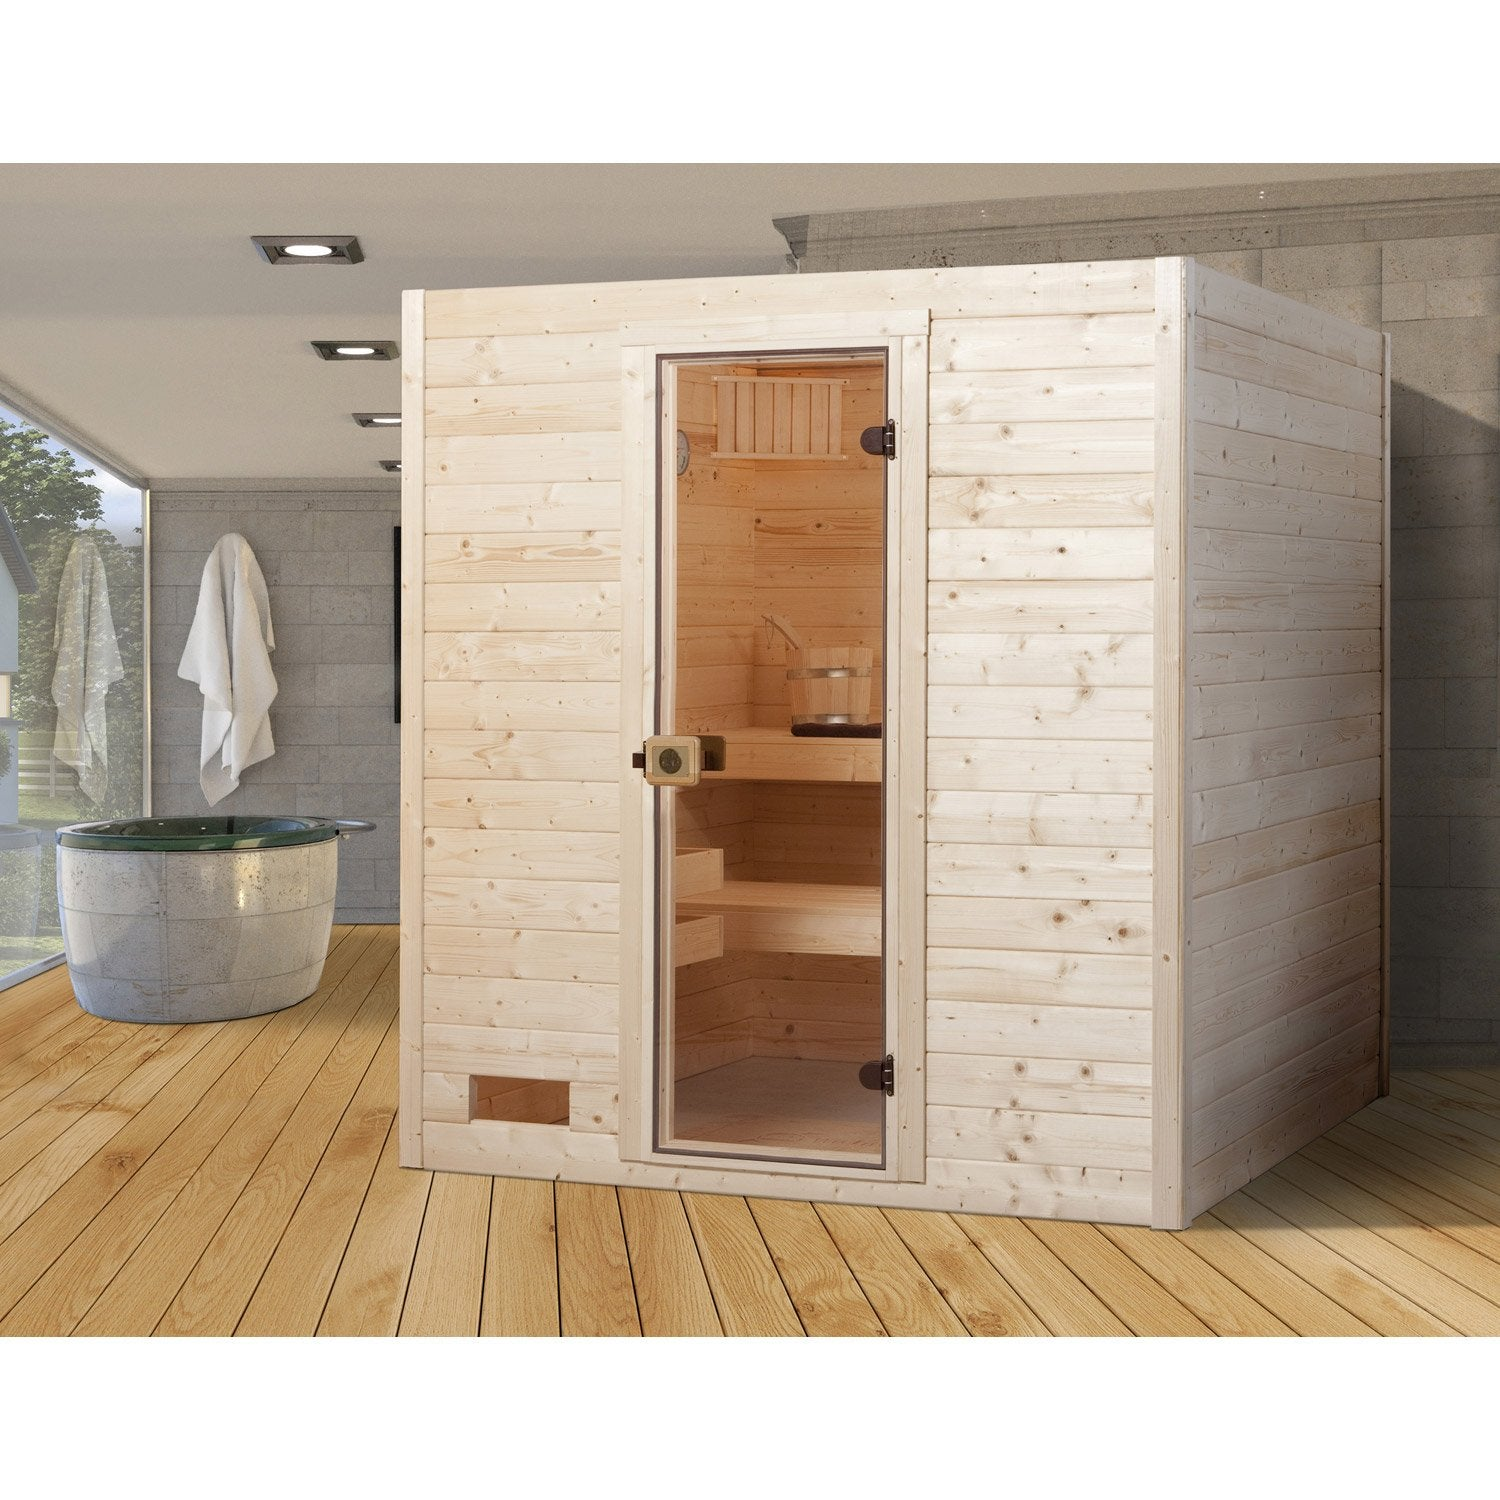 sauna traditionnel 3 places mod le oland 2 weka. Black Bedroom Furniture Sets. Home Design Ideas